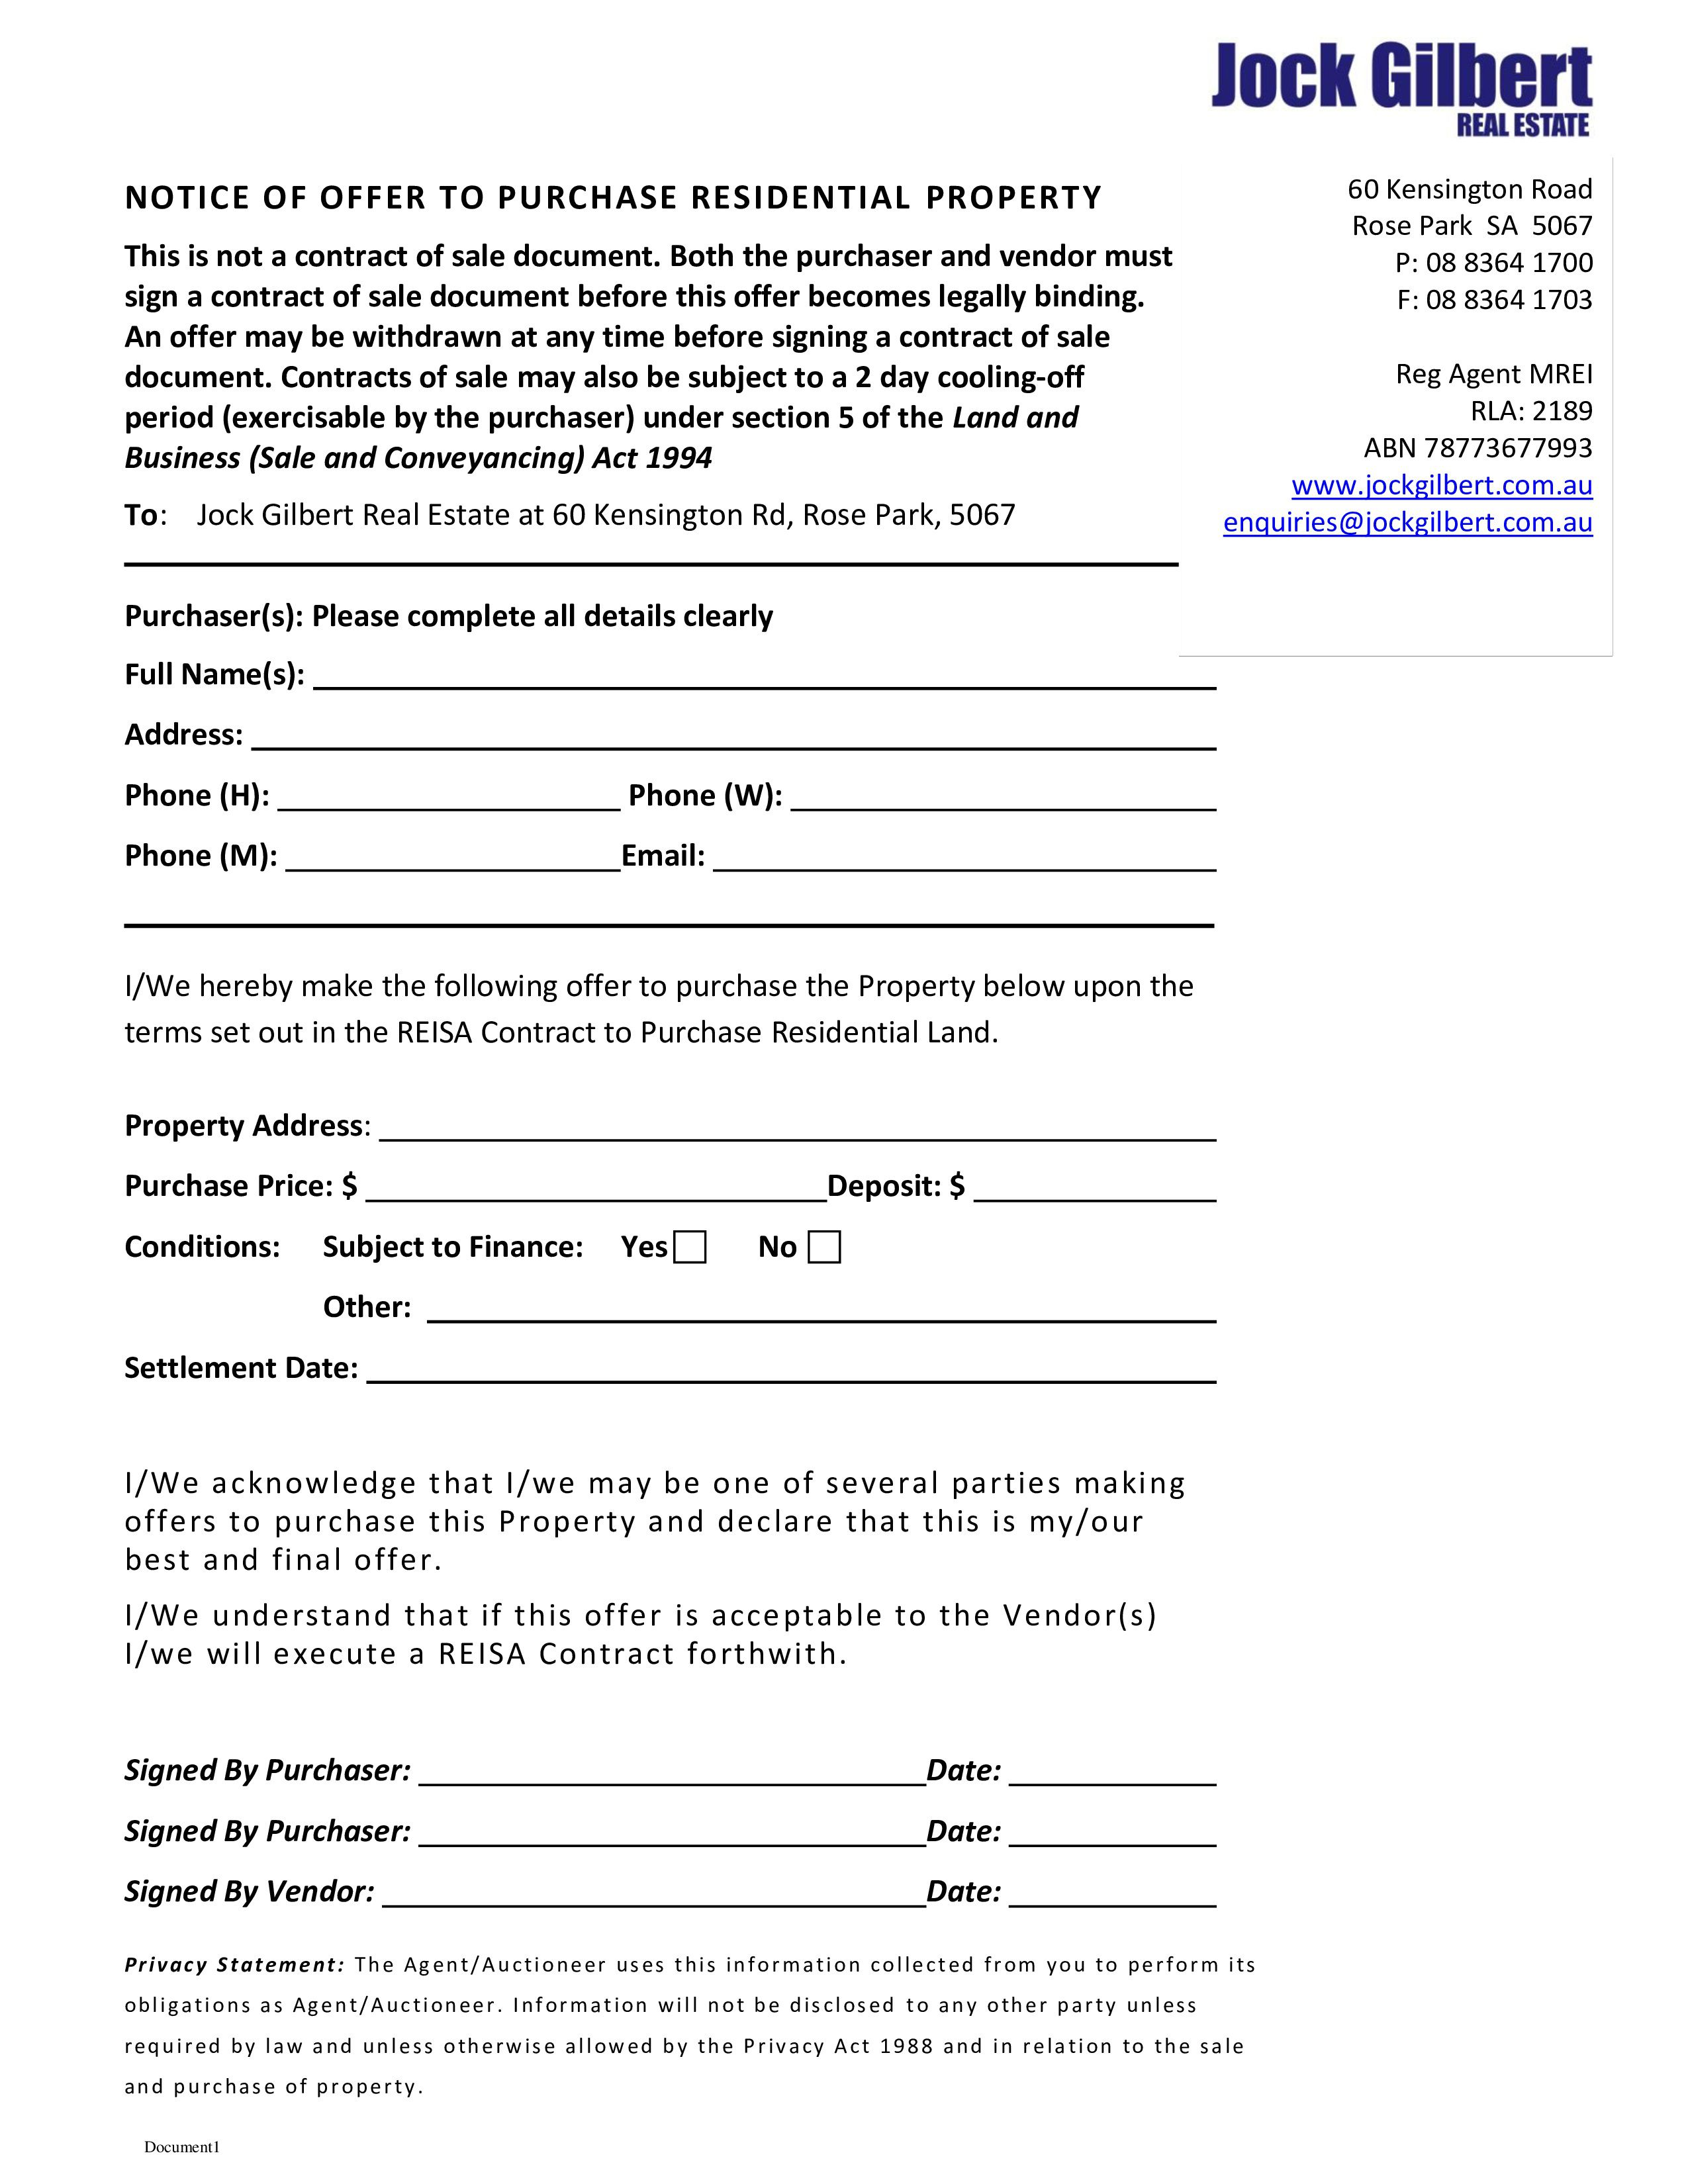 001 Archaicawful House Offer Letter Template High Resolution  Purchase UkFull